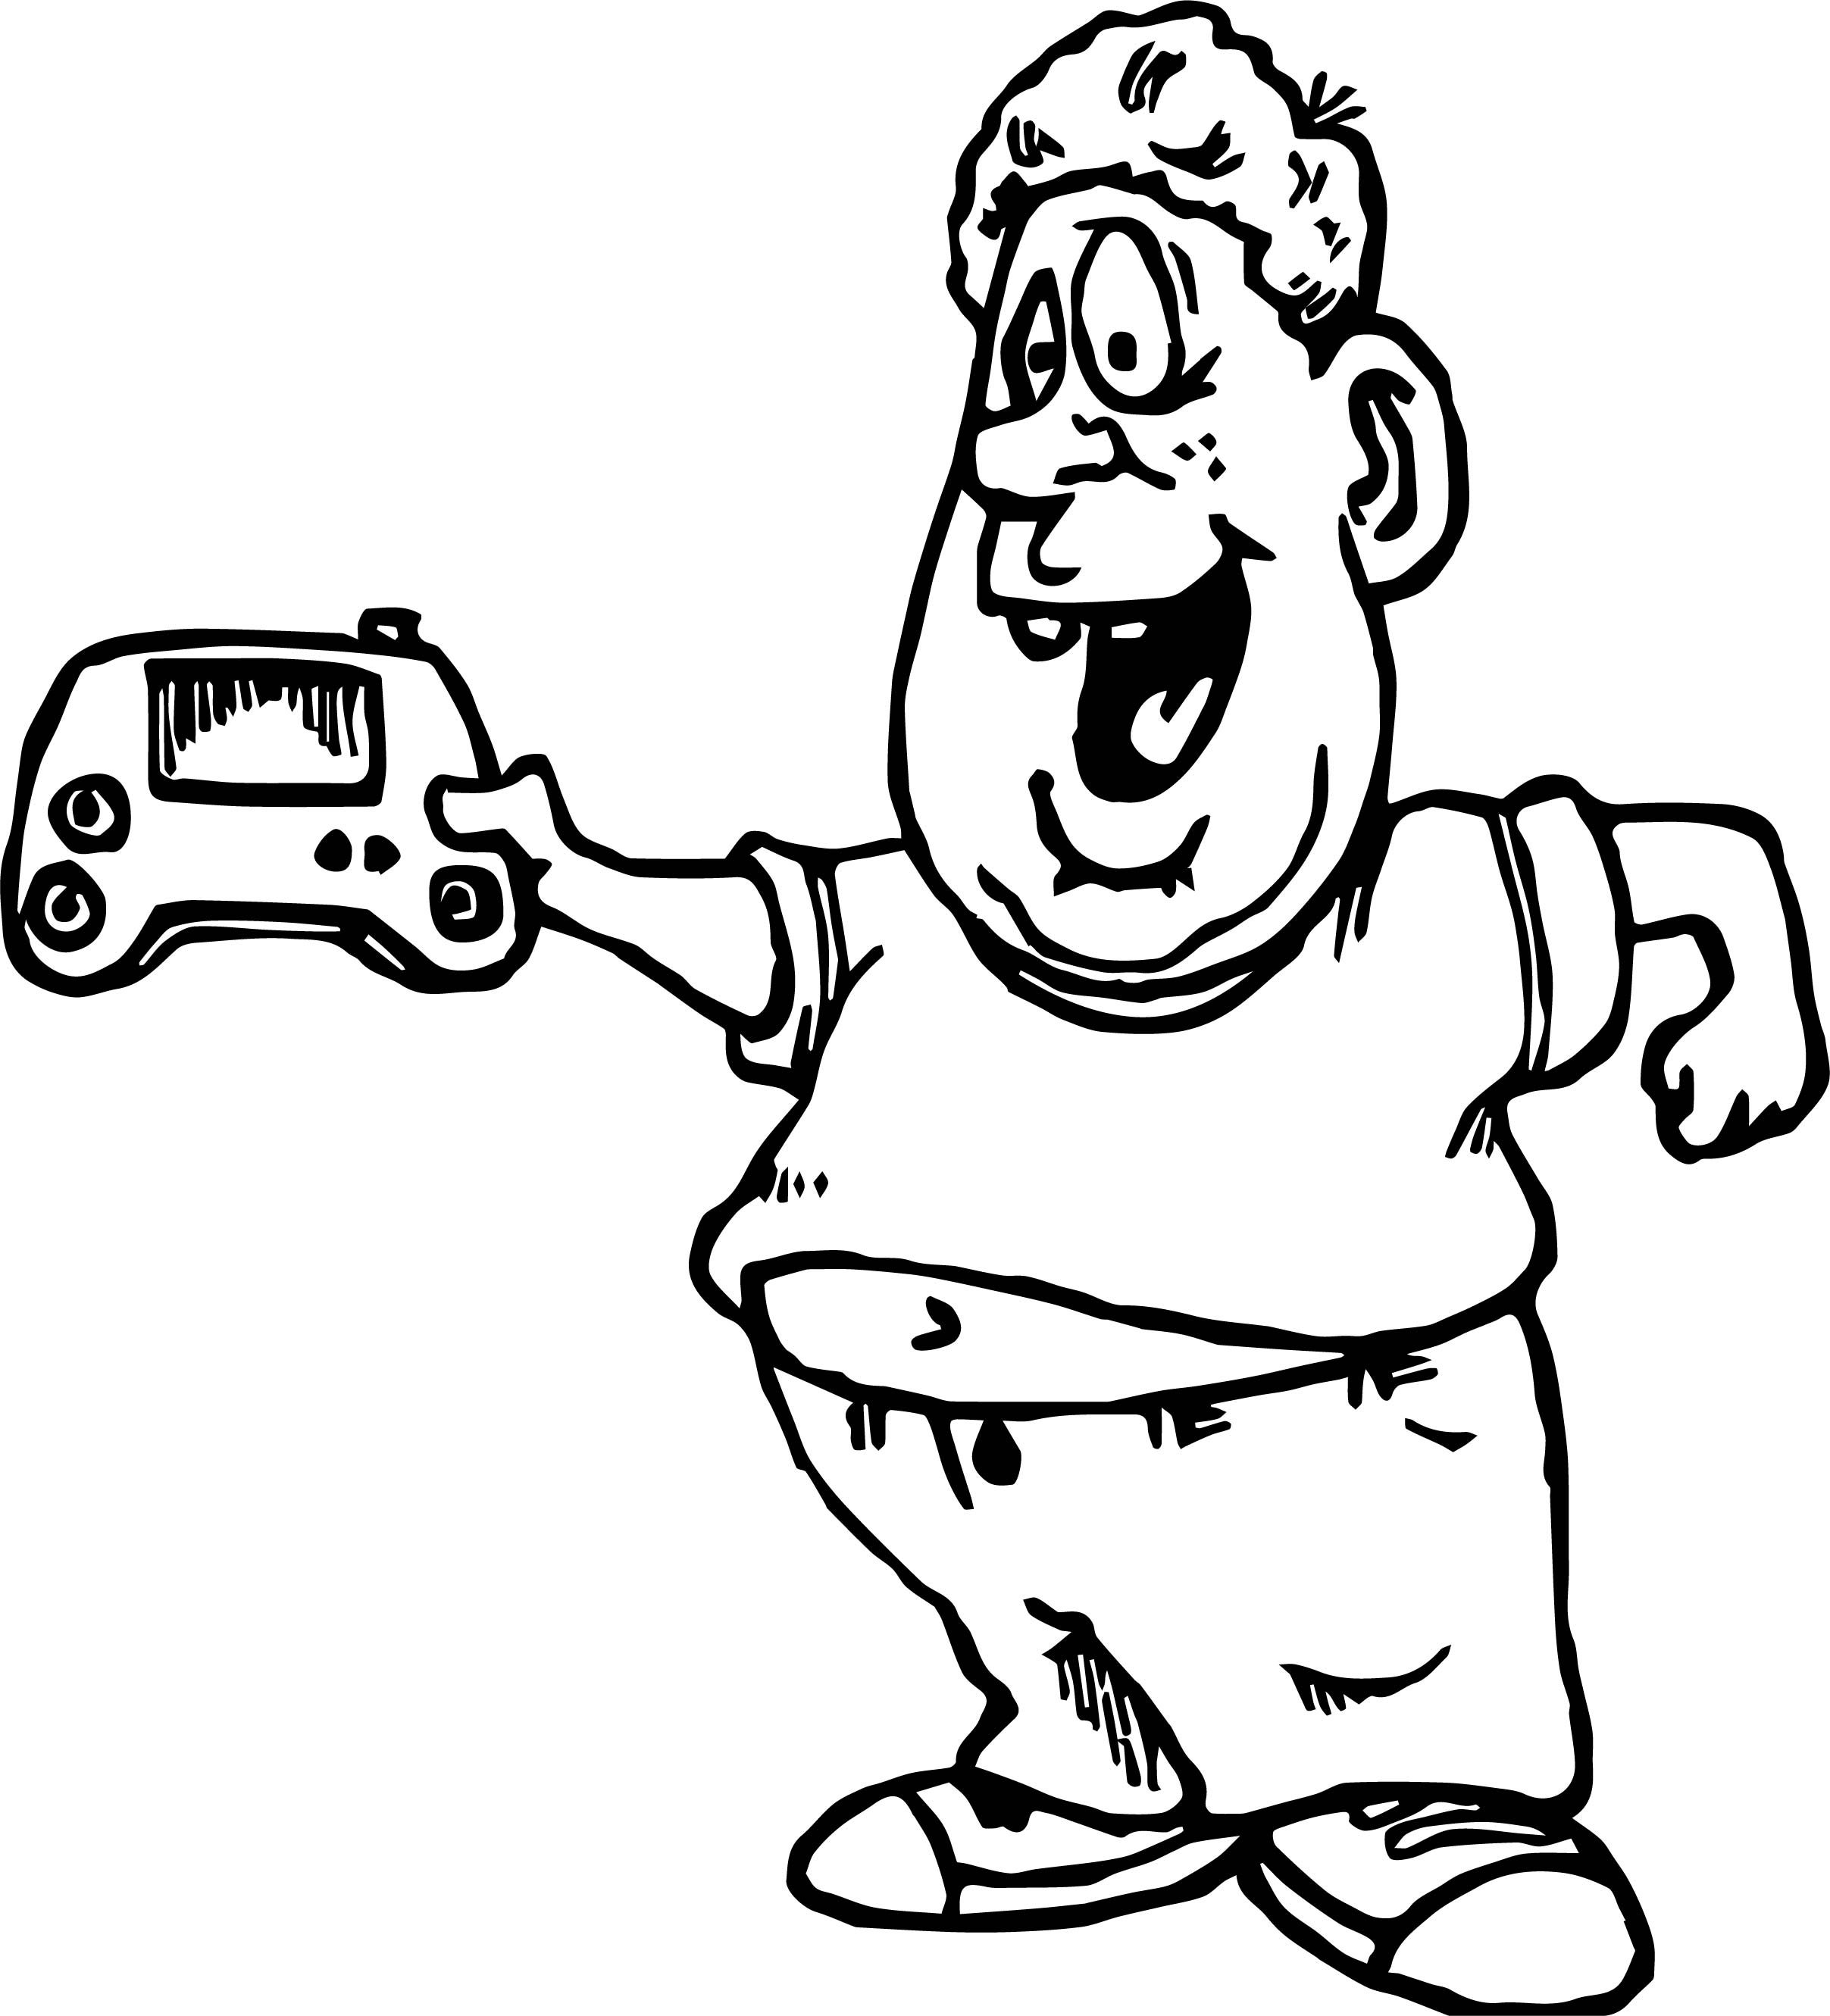 Big man playing computer games coloring page for Big coloring pages